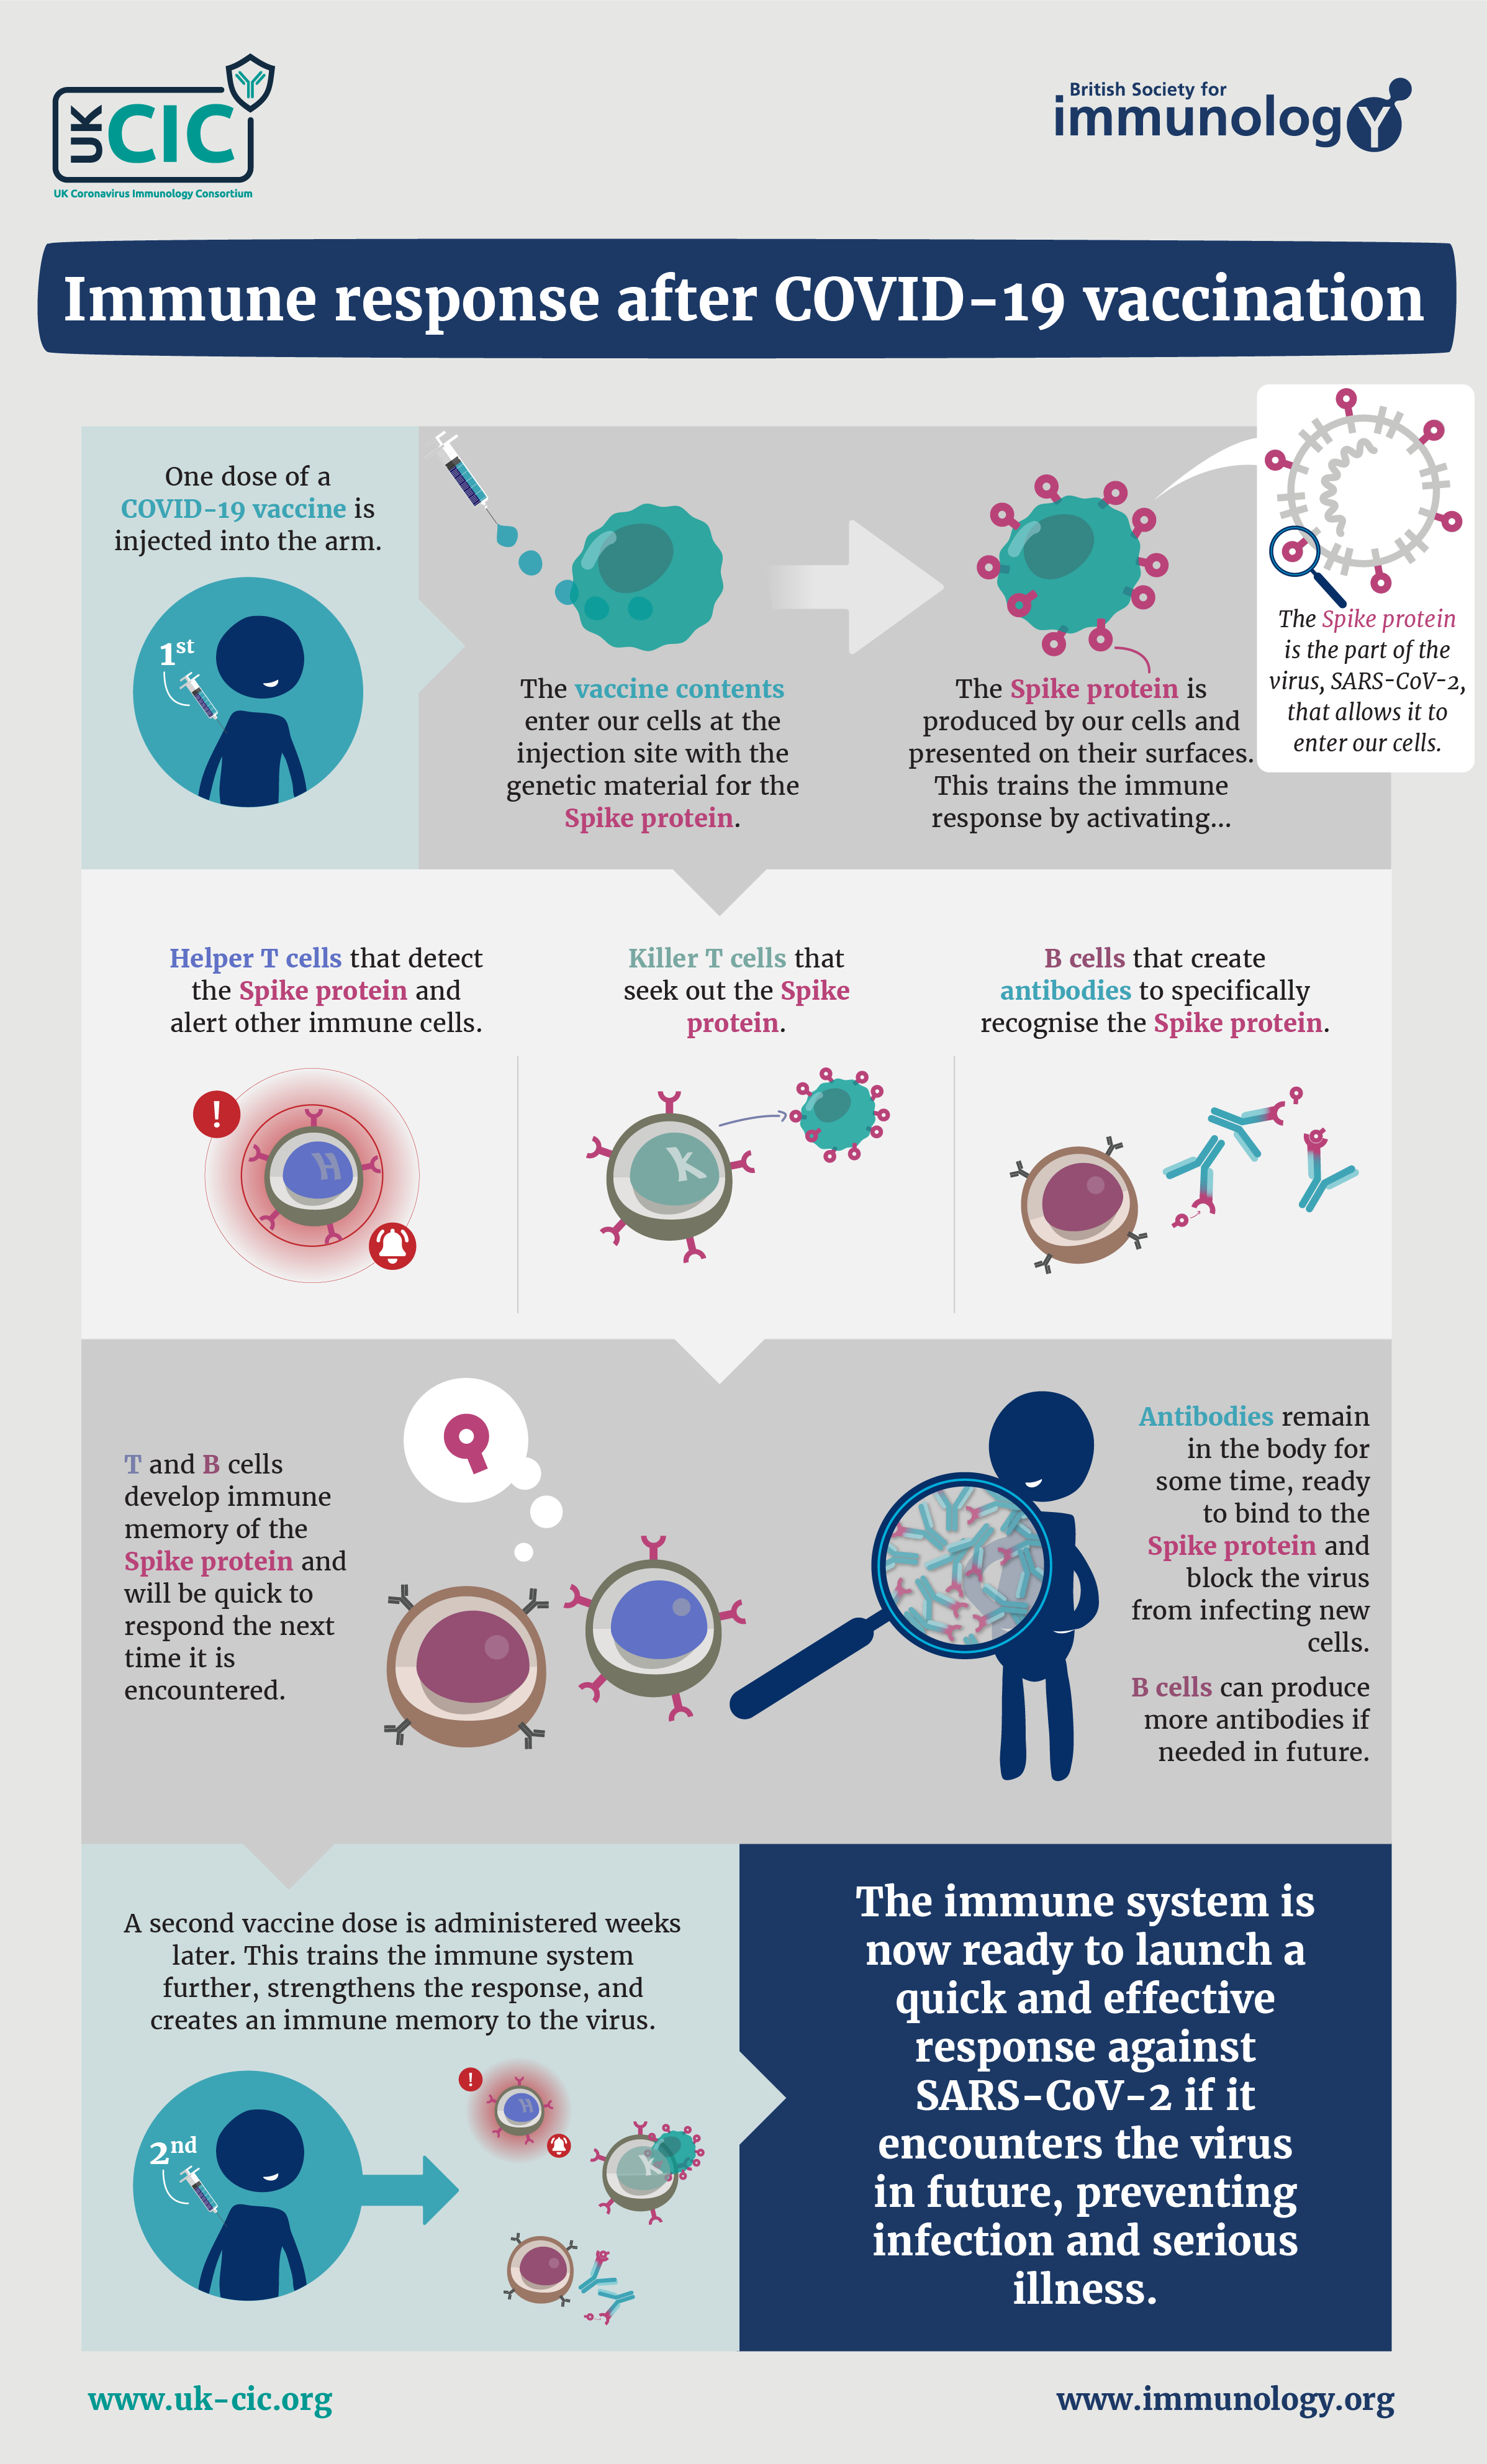 An infographic describing how the COVID-19 vaccines train the T and B cells of our immune system to recognise SARS-CoV-2